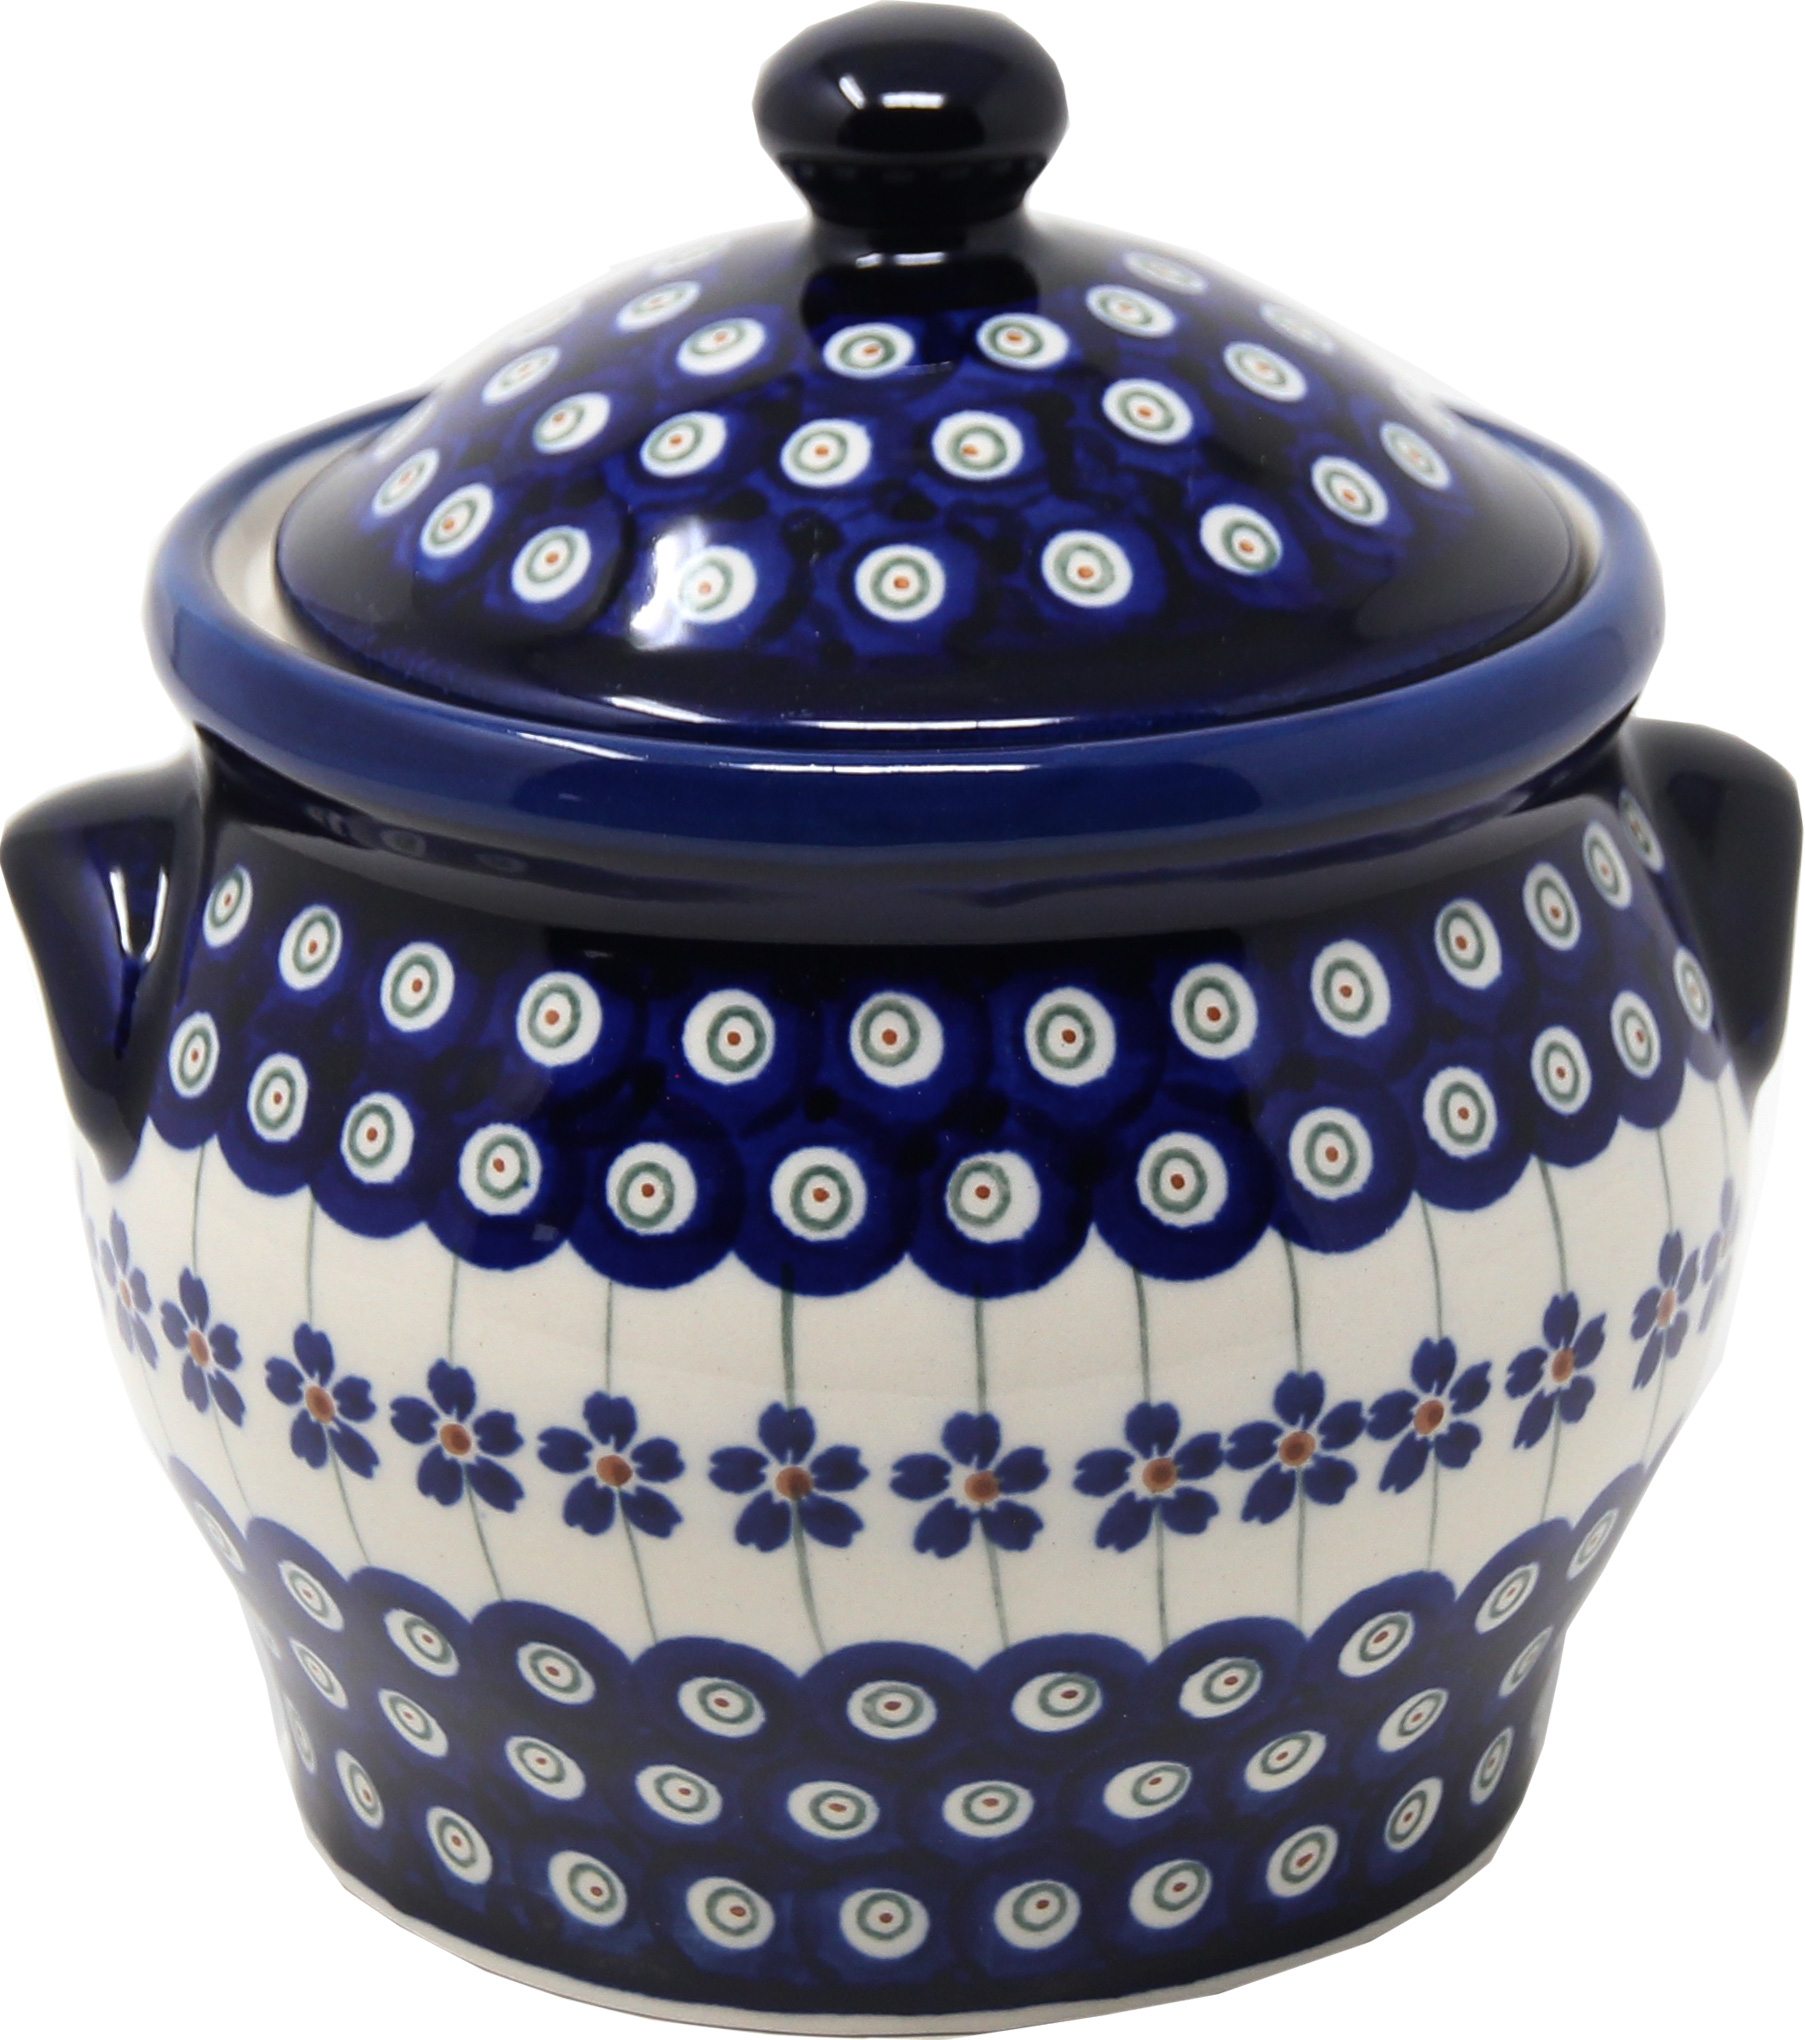 Polish Pottery Medium Canister 4.2 cups in Floral Peacock Pattern from Boleslawiec